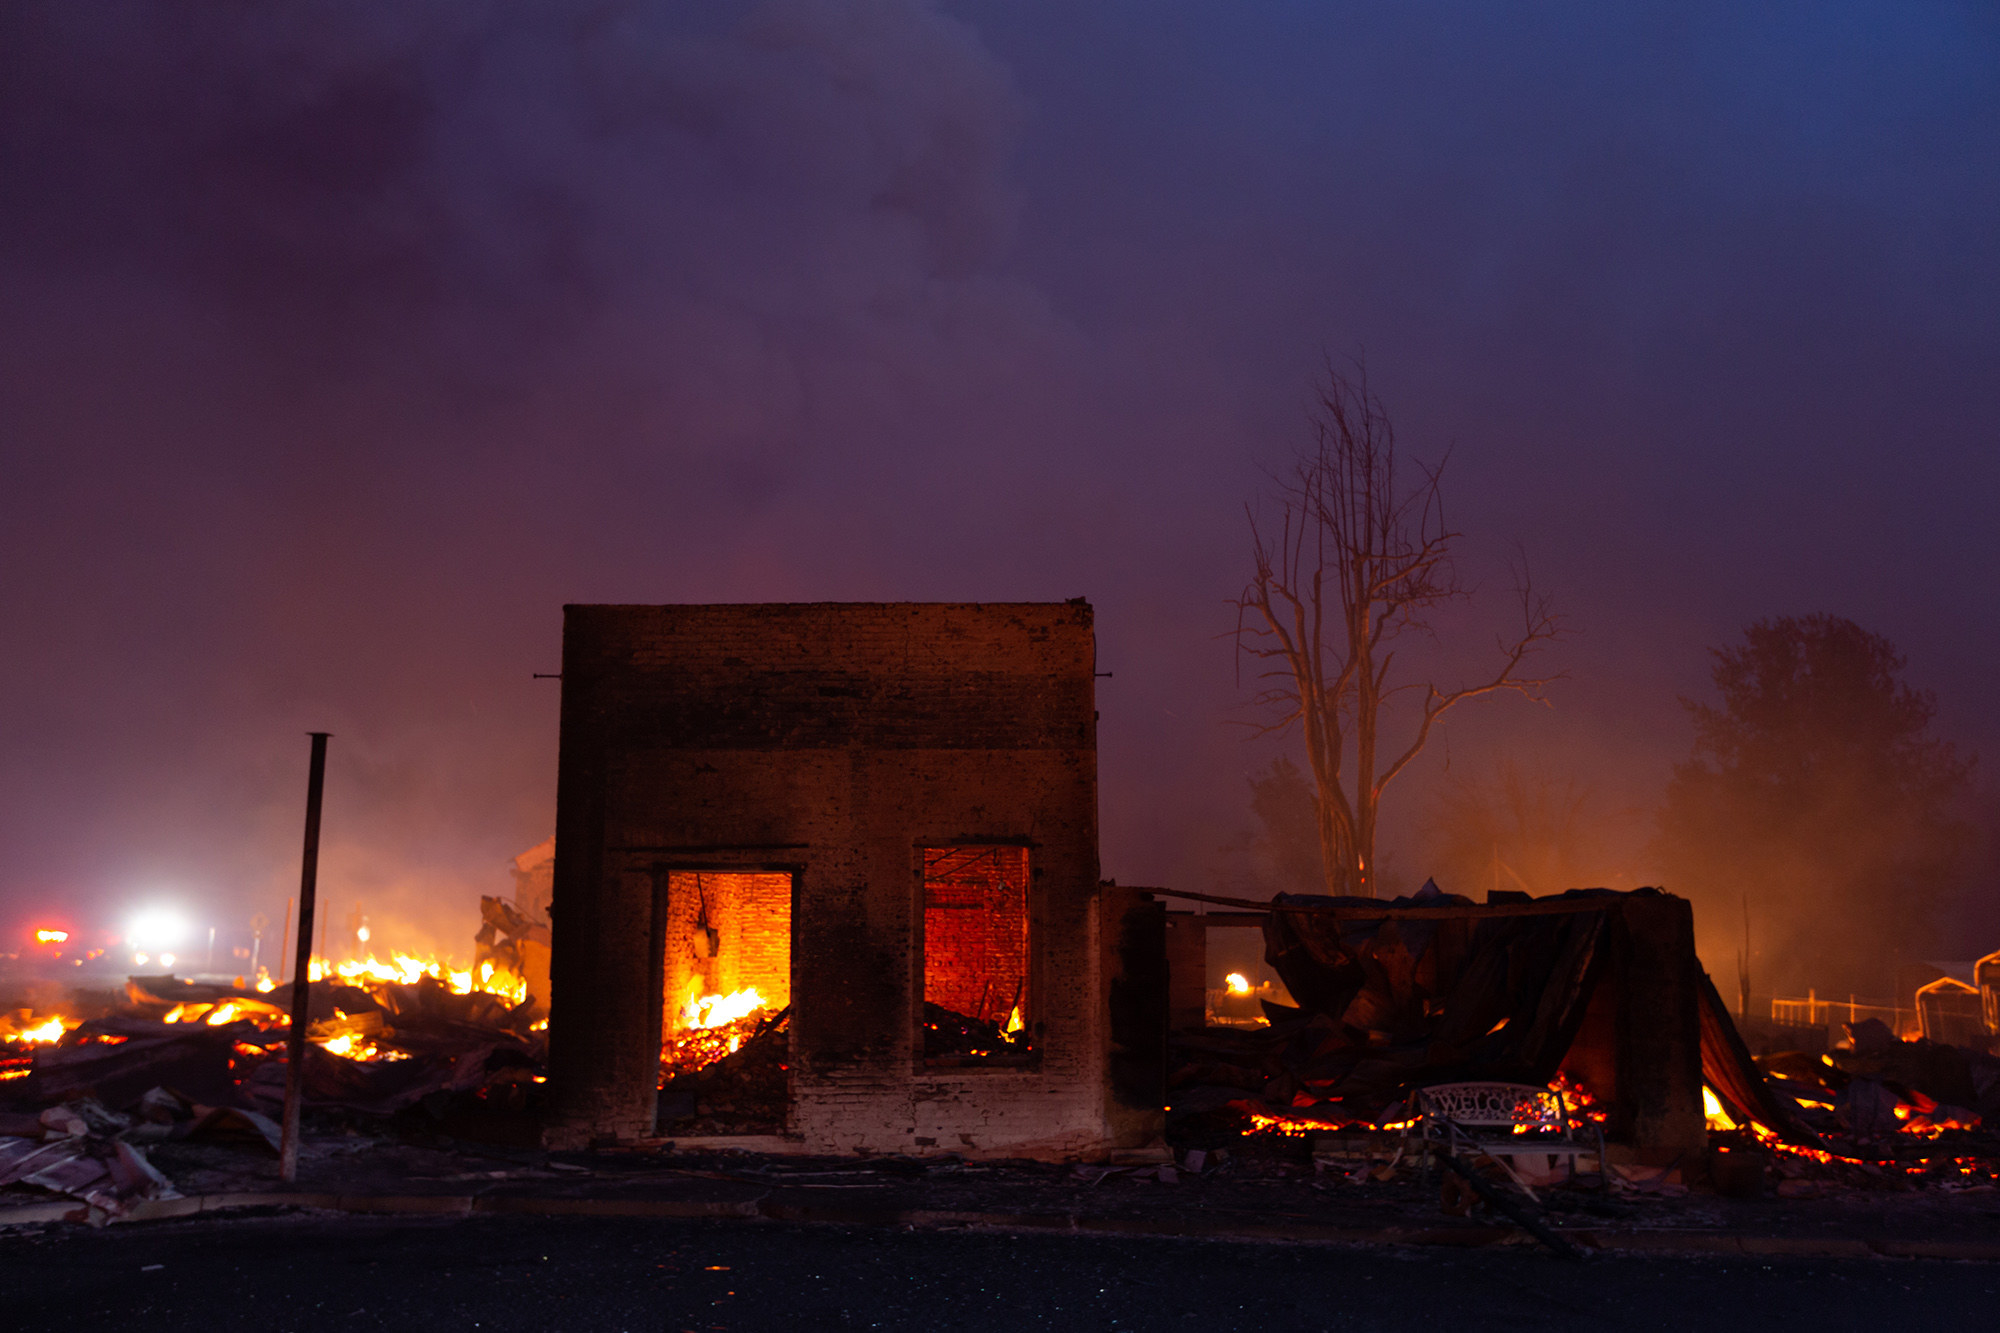 A destroyed brick building is surrounded by fire and debris